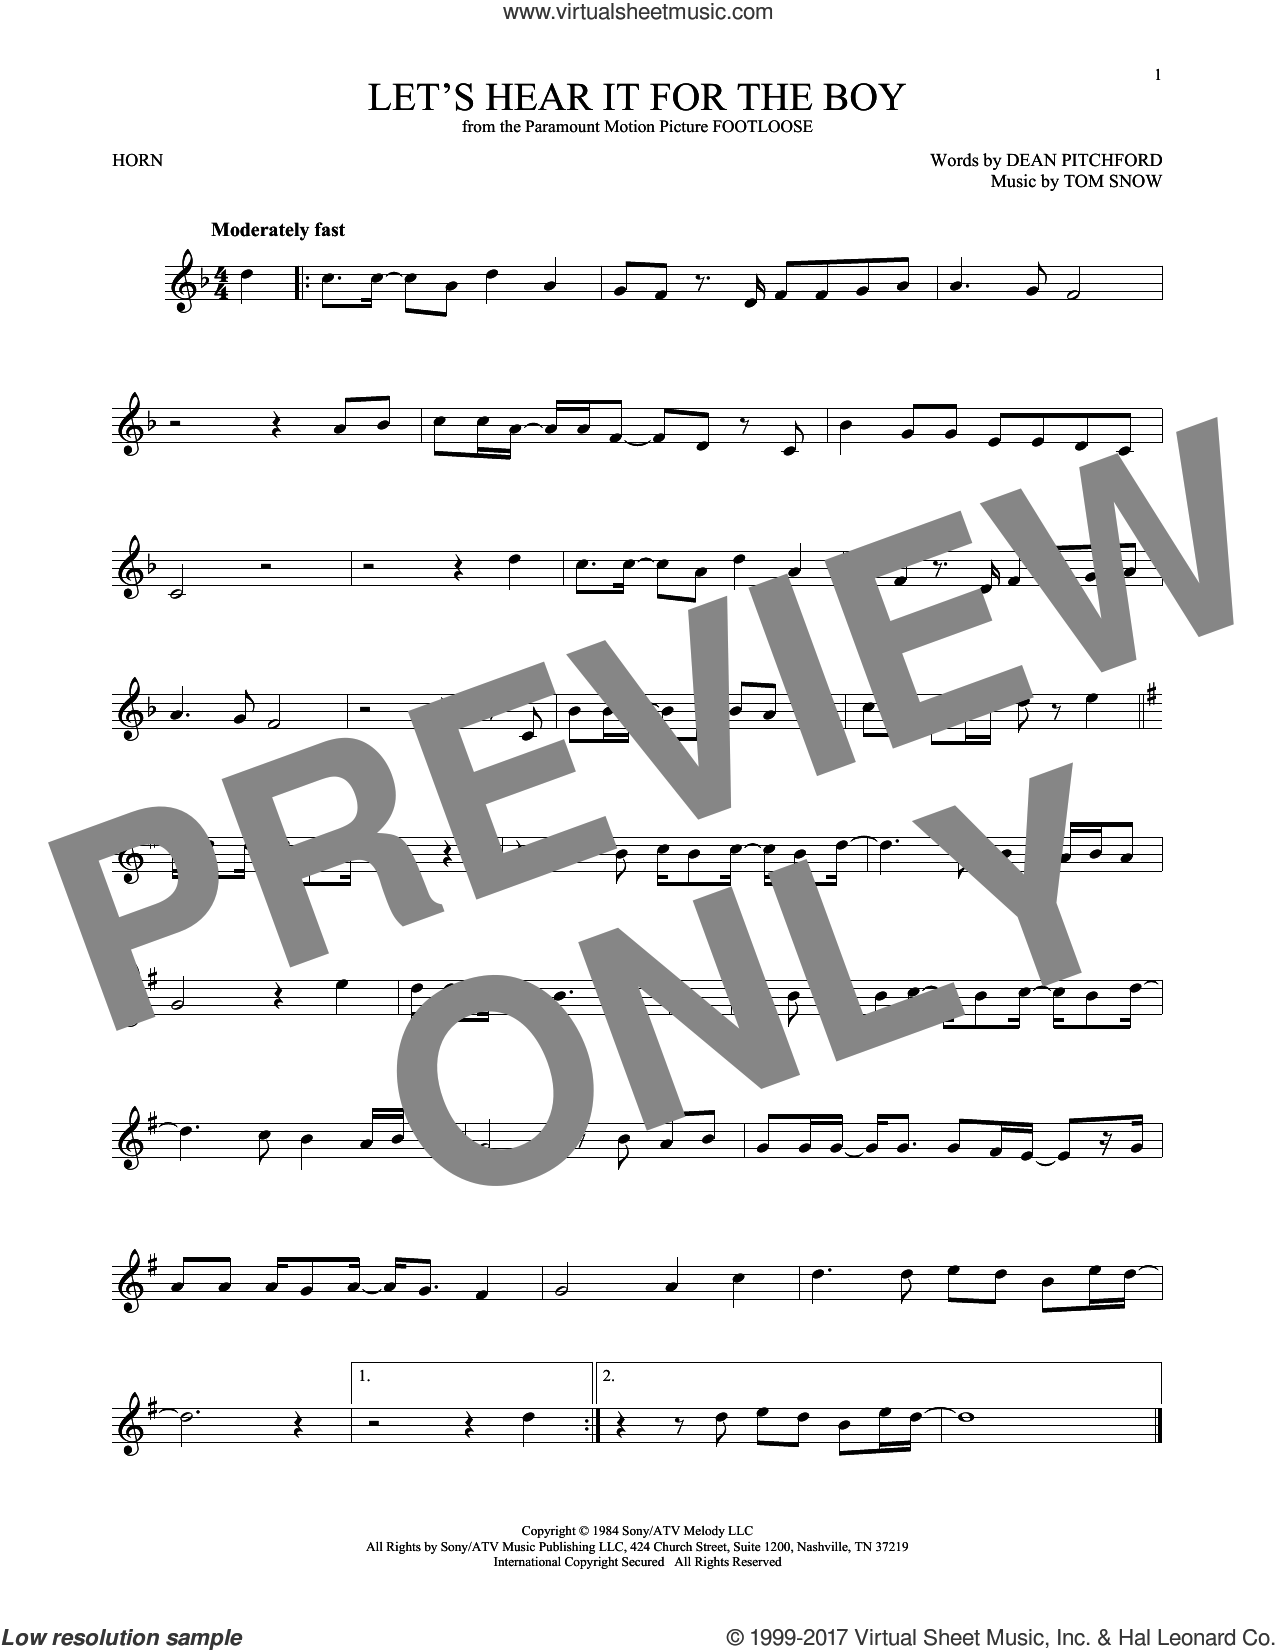 Let's Hear It For The Boy sheet music for horn solo by Deniece Williams, Dean Pitchford and Tom Snow, intermediate skill level